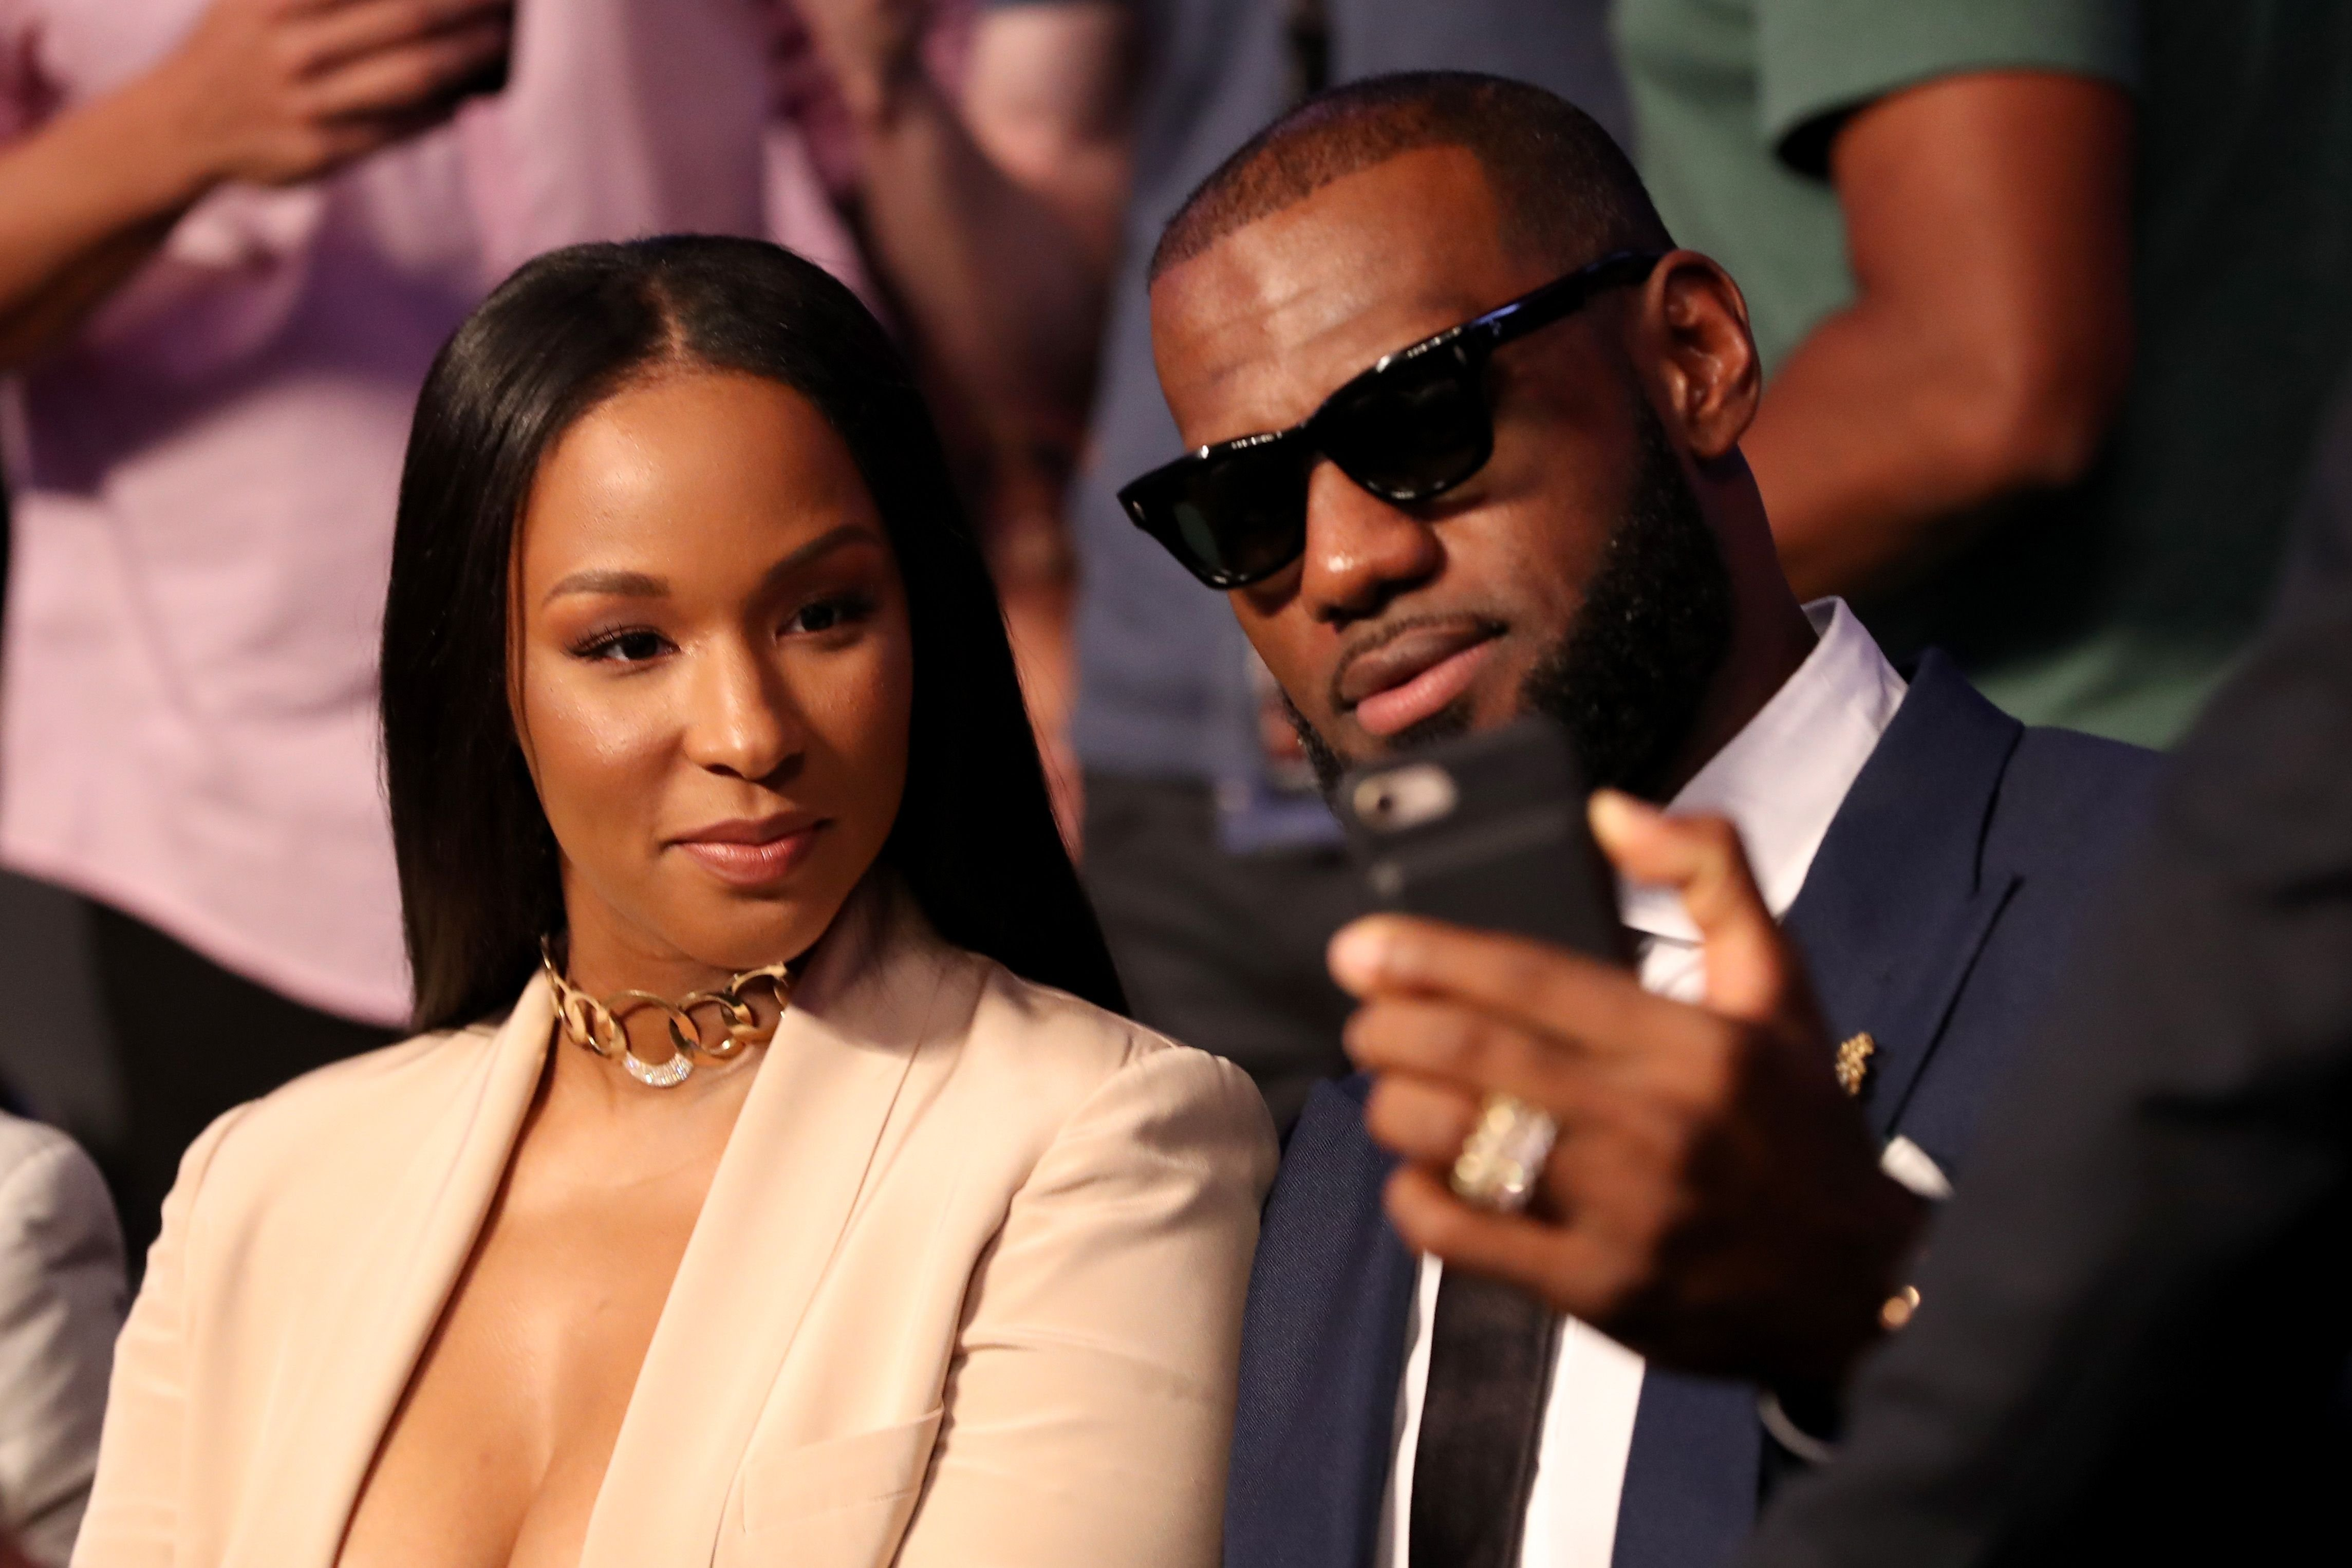 Lebron James and wife Savannah Brinson at the super welterweight boxing match between Floyd Mayweather Jr. and Conor McGregor on August 26, 2017 | Photo: Getty Images